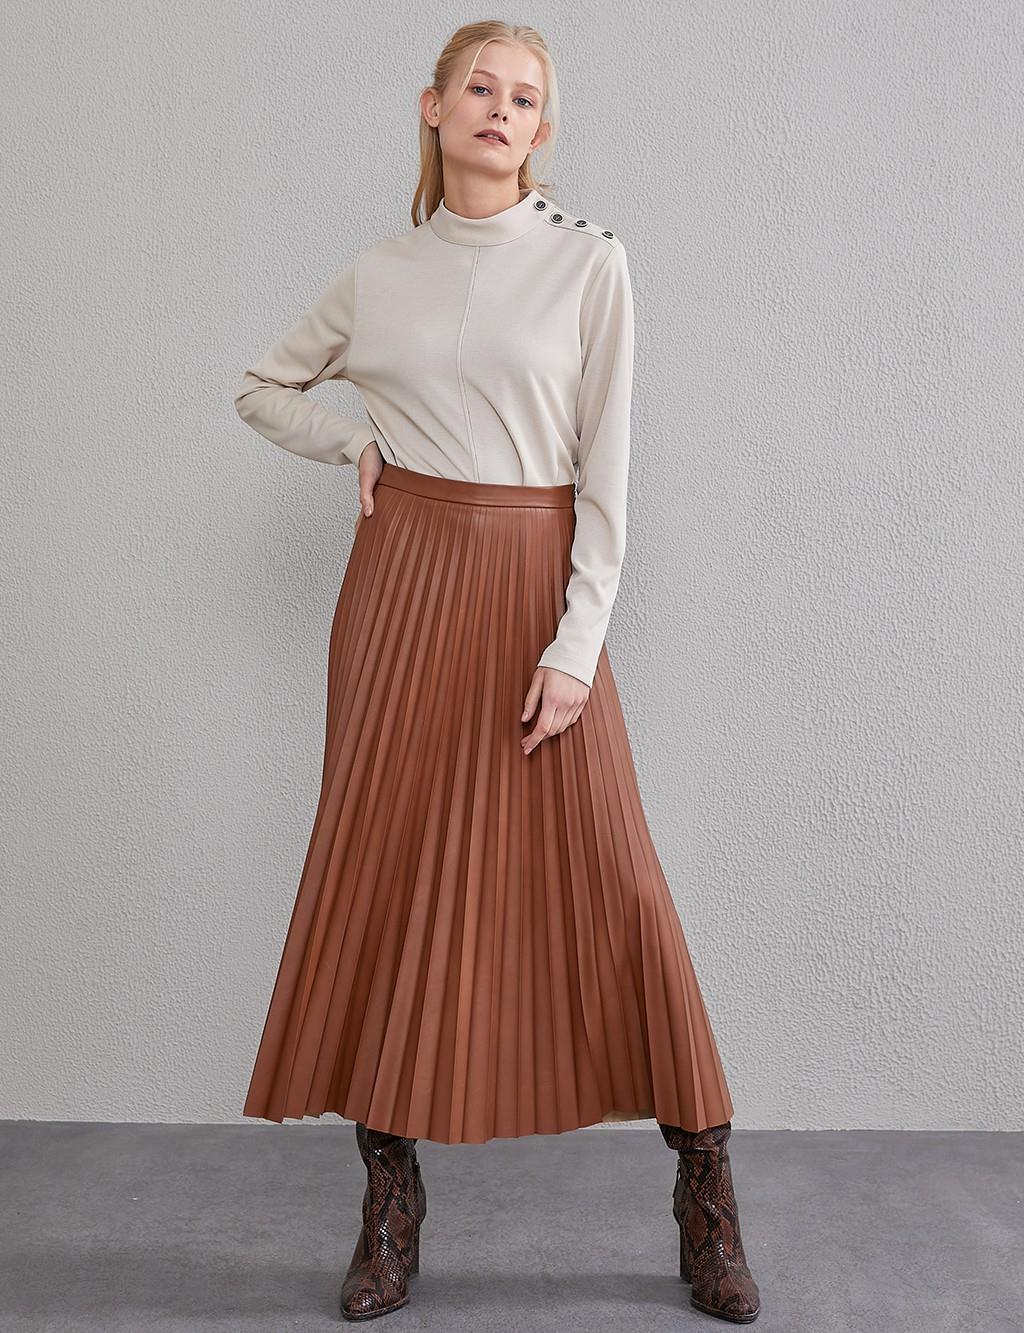 Artificial Leather Skirt A20 12038 Light Brown